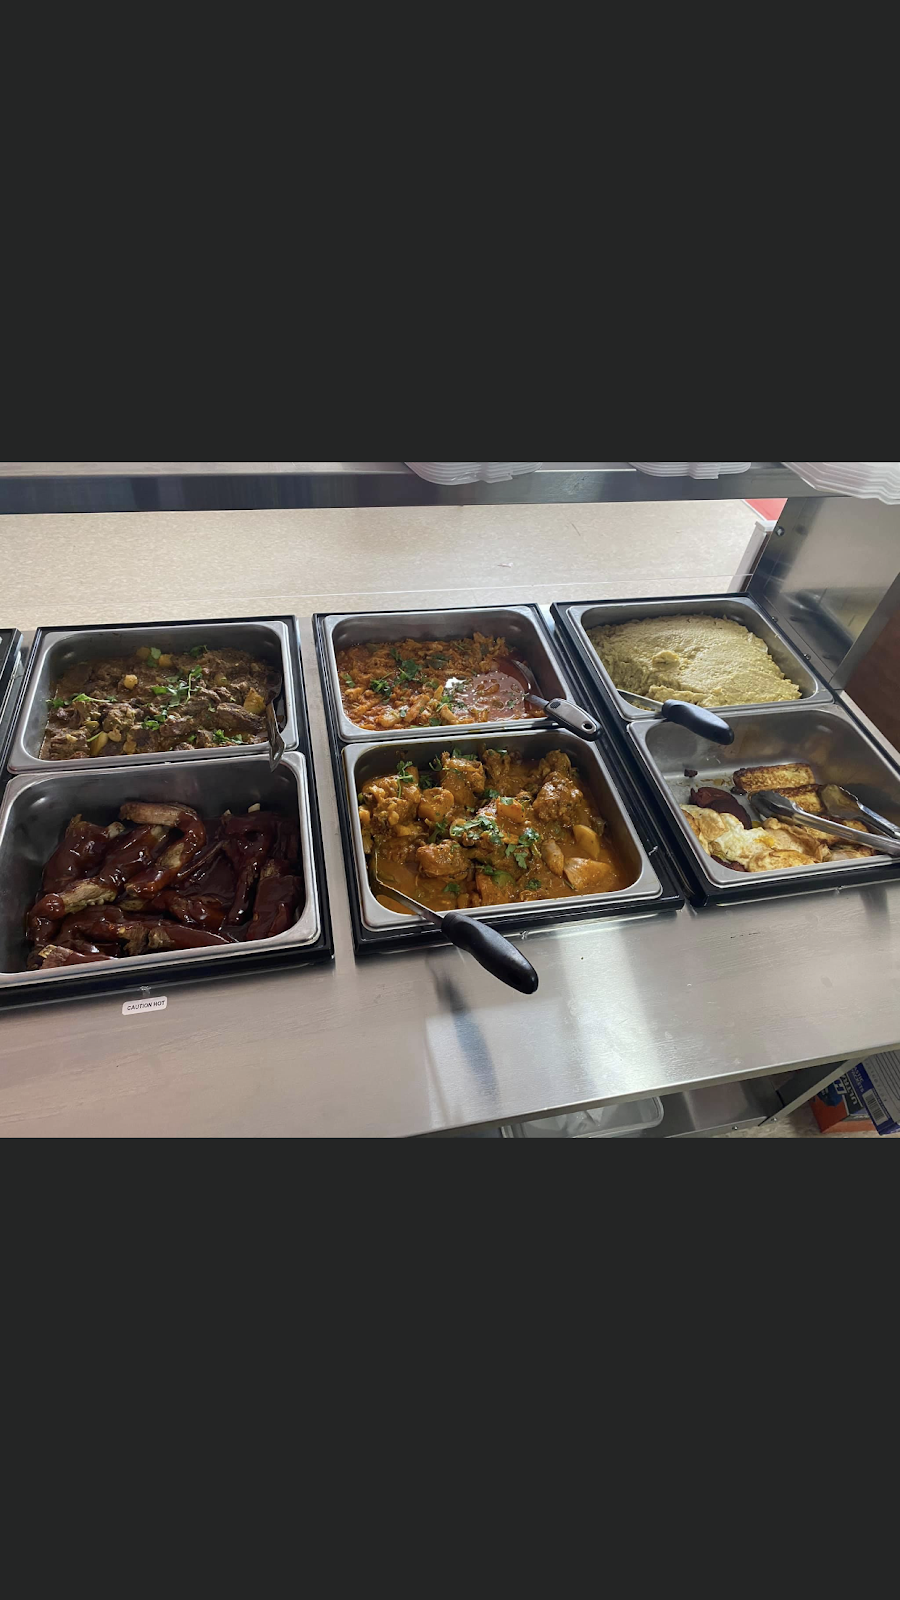 Victoria Restaurant | meal takeaway | 129 Columbus Ave, Syracuse, NY 13210, USA | 3153784328 OR +1 315-378-4328